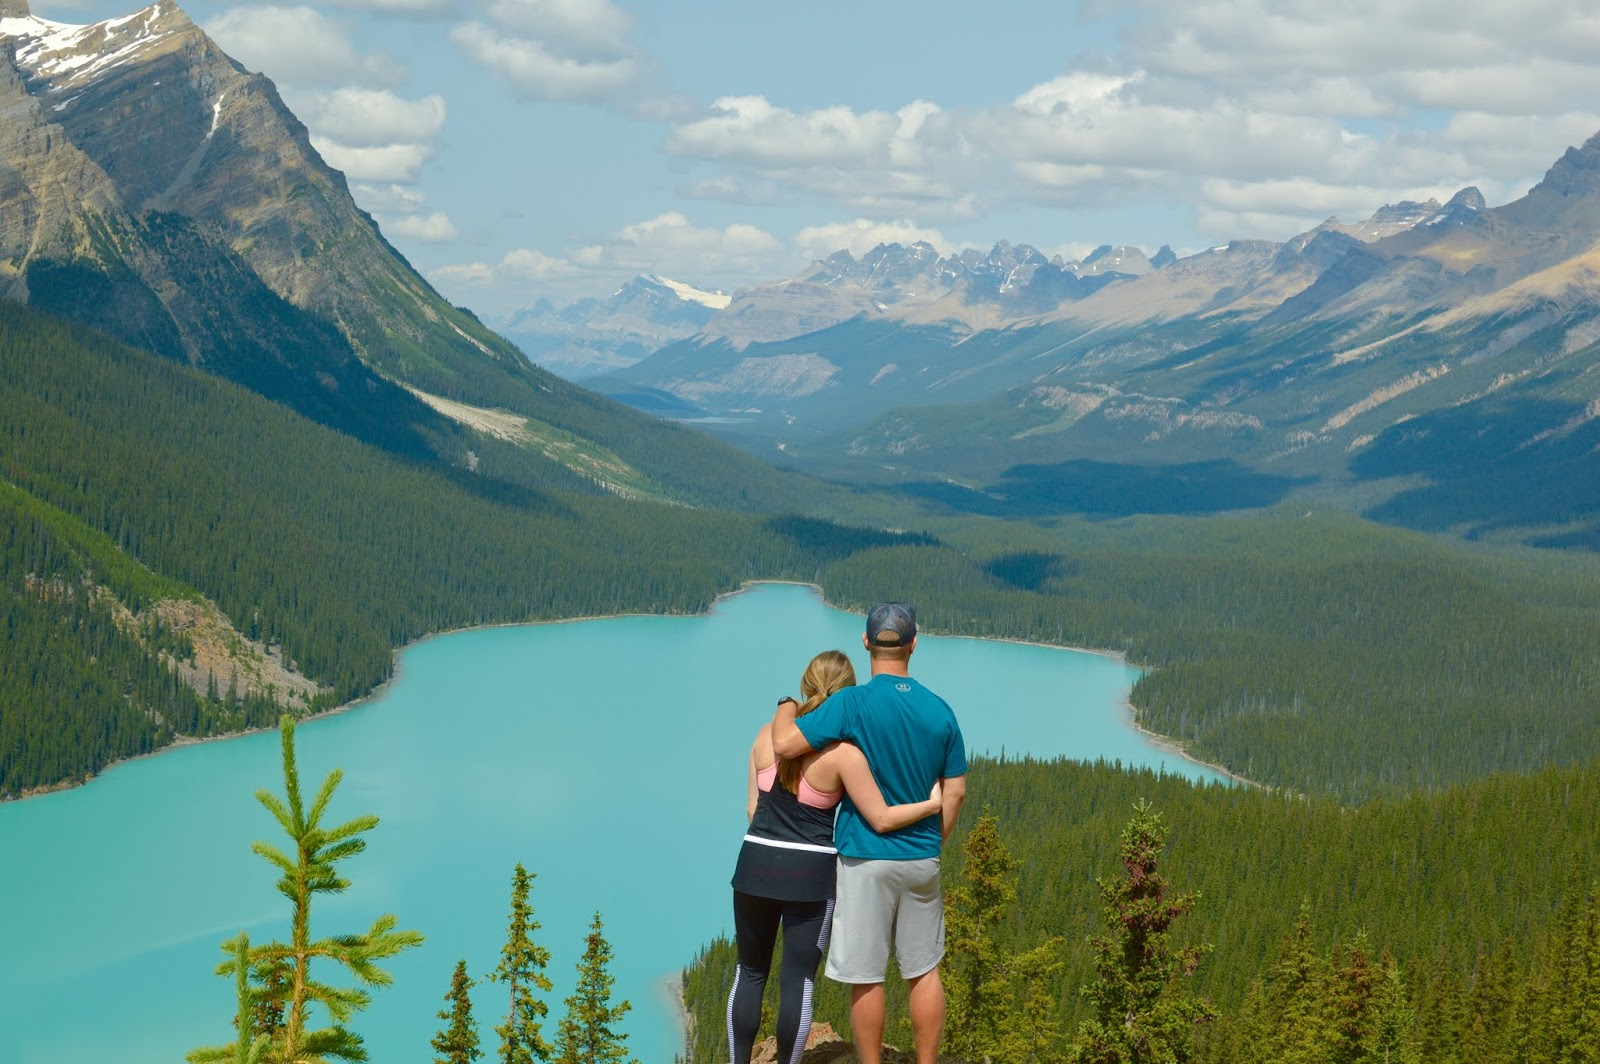 Couple Pictures at Peyto Lake | Peyto Lake | Banff National Park | What to do in Banff | Icefields Parkway stops | Where to stop on the Icefields Parkway | A Memory of Us